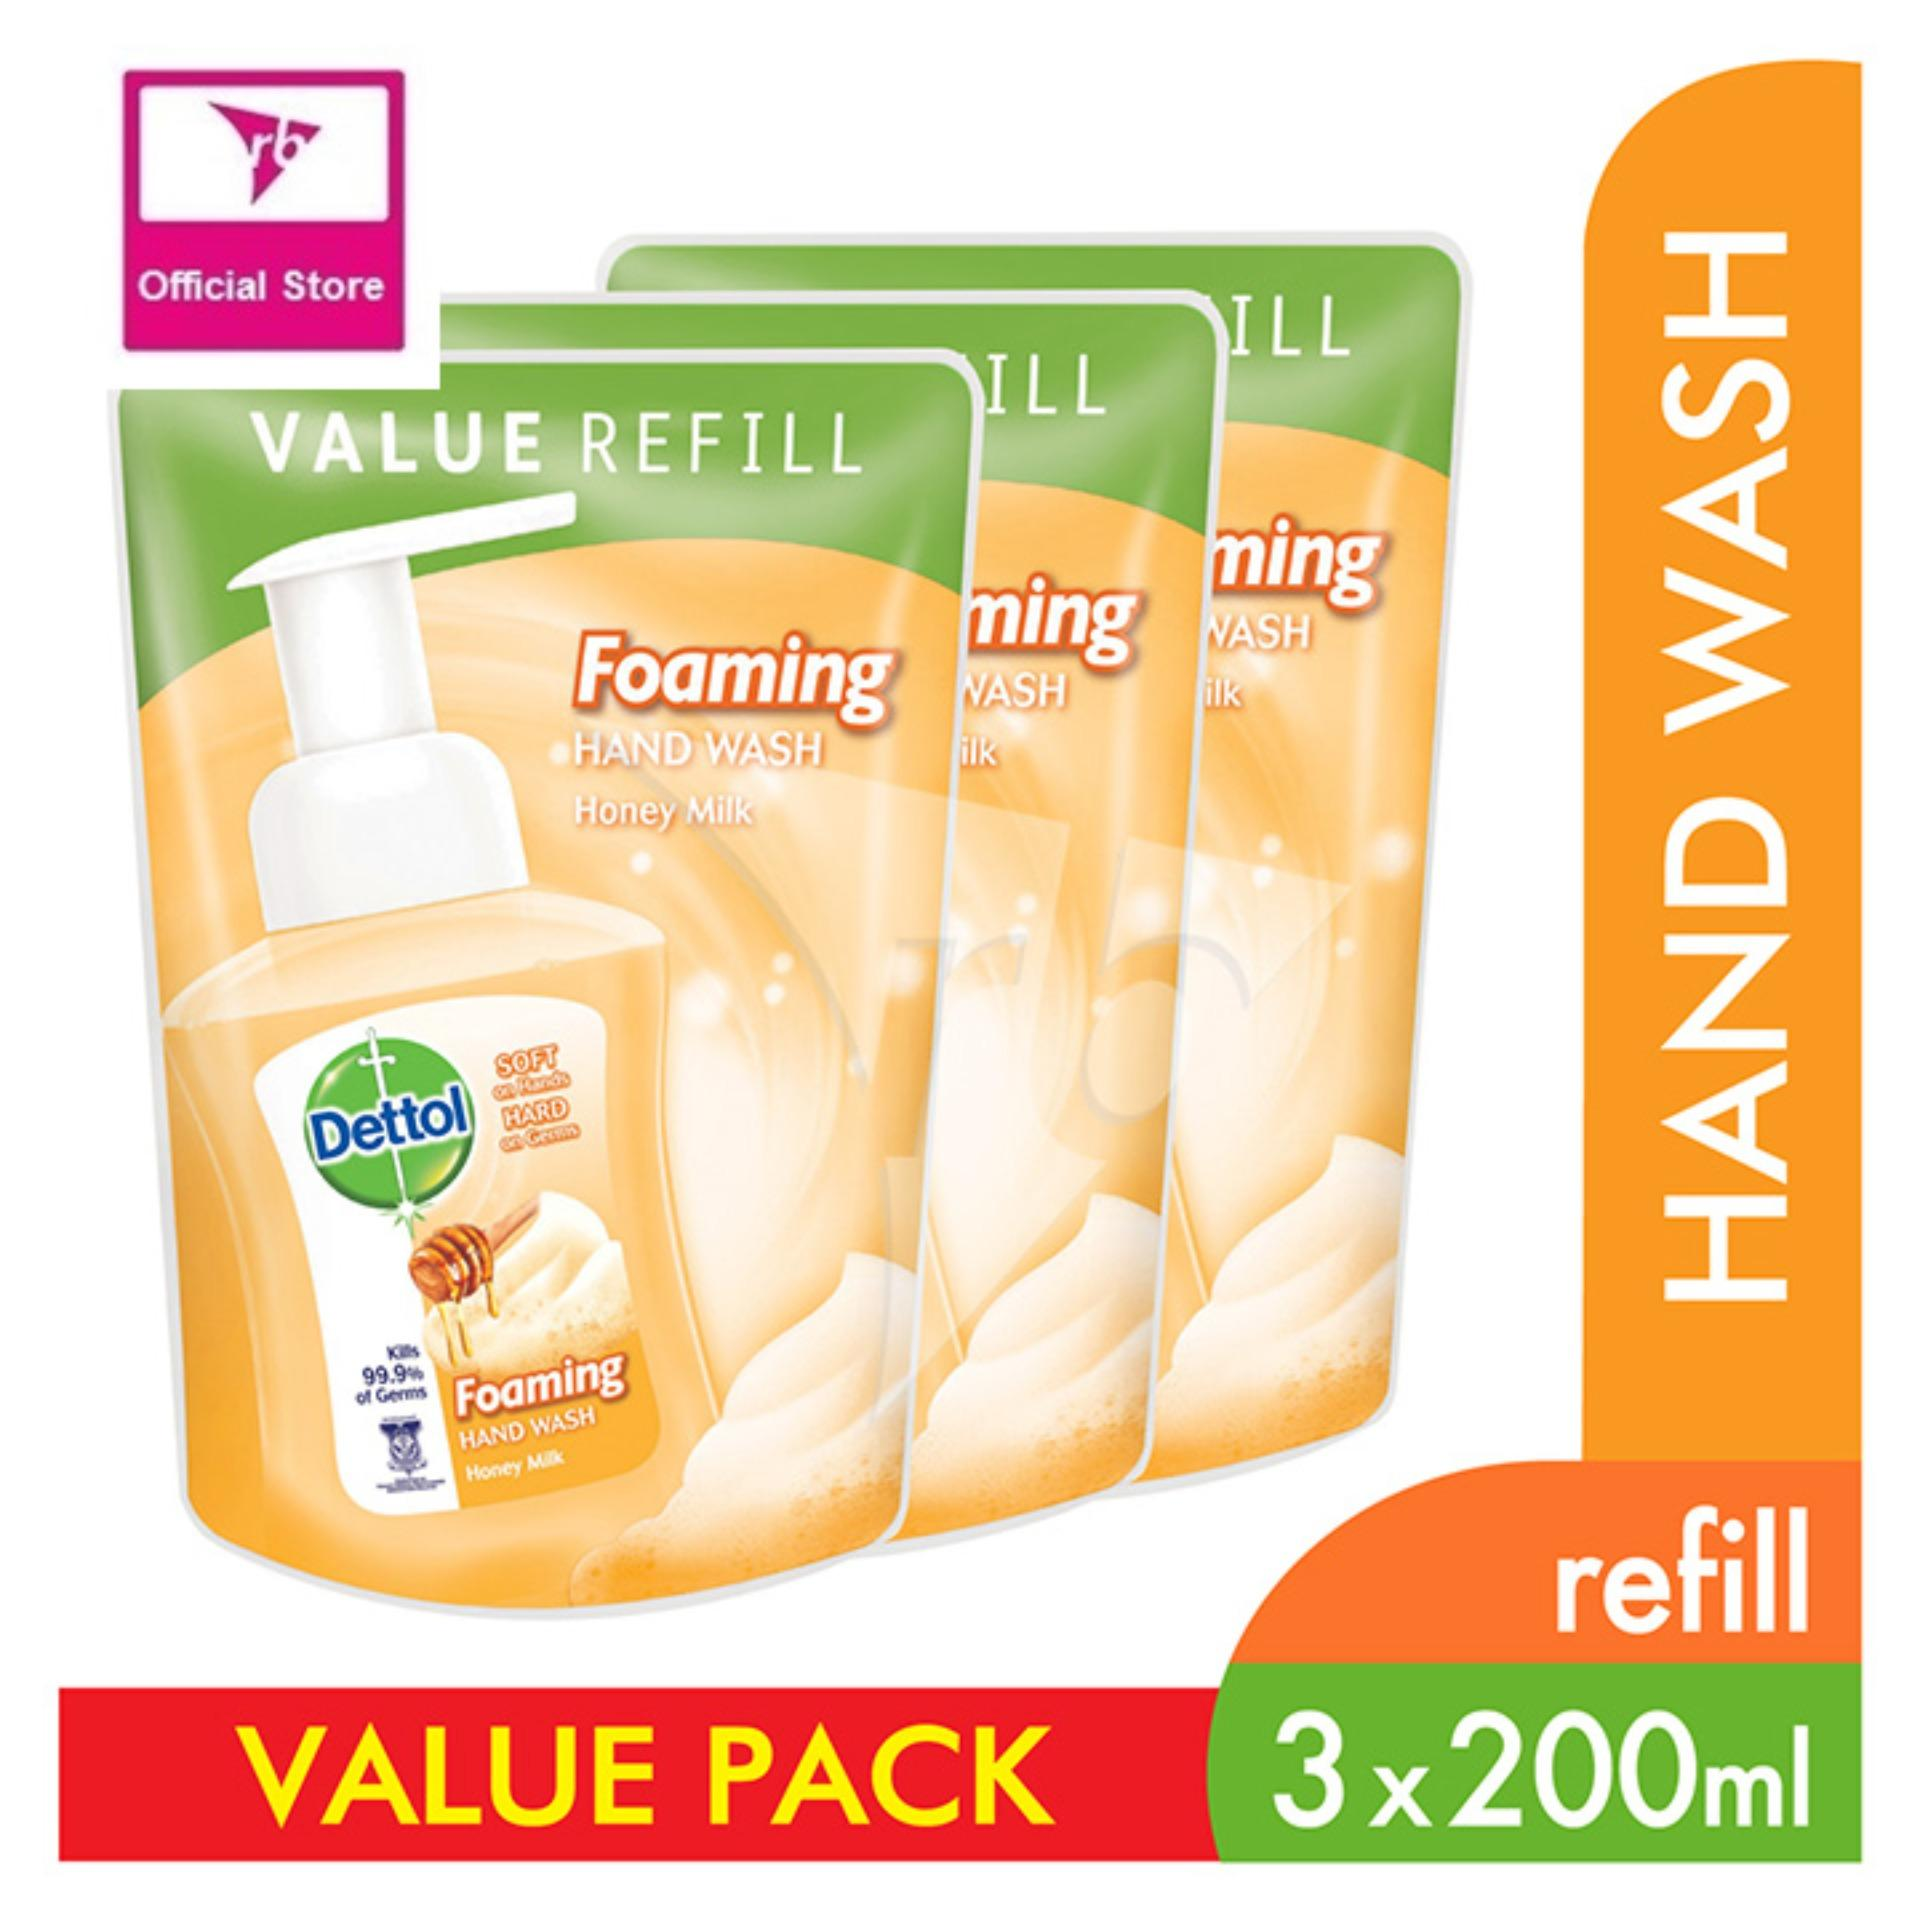 Buy Latest Bath Products Body Care Lazada Dettol Hand Wash Sensitive 200 Ml Pouch 2 Pcs Antibacterial Foaming Honey Milk Refill 200ml X 3